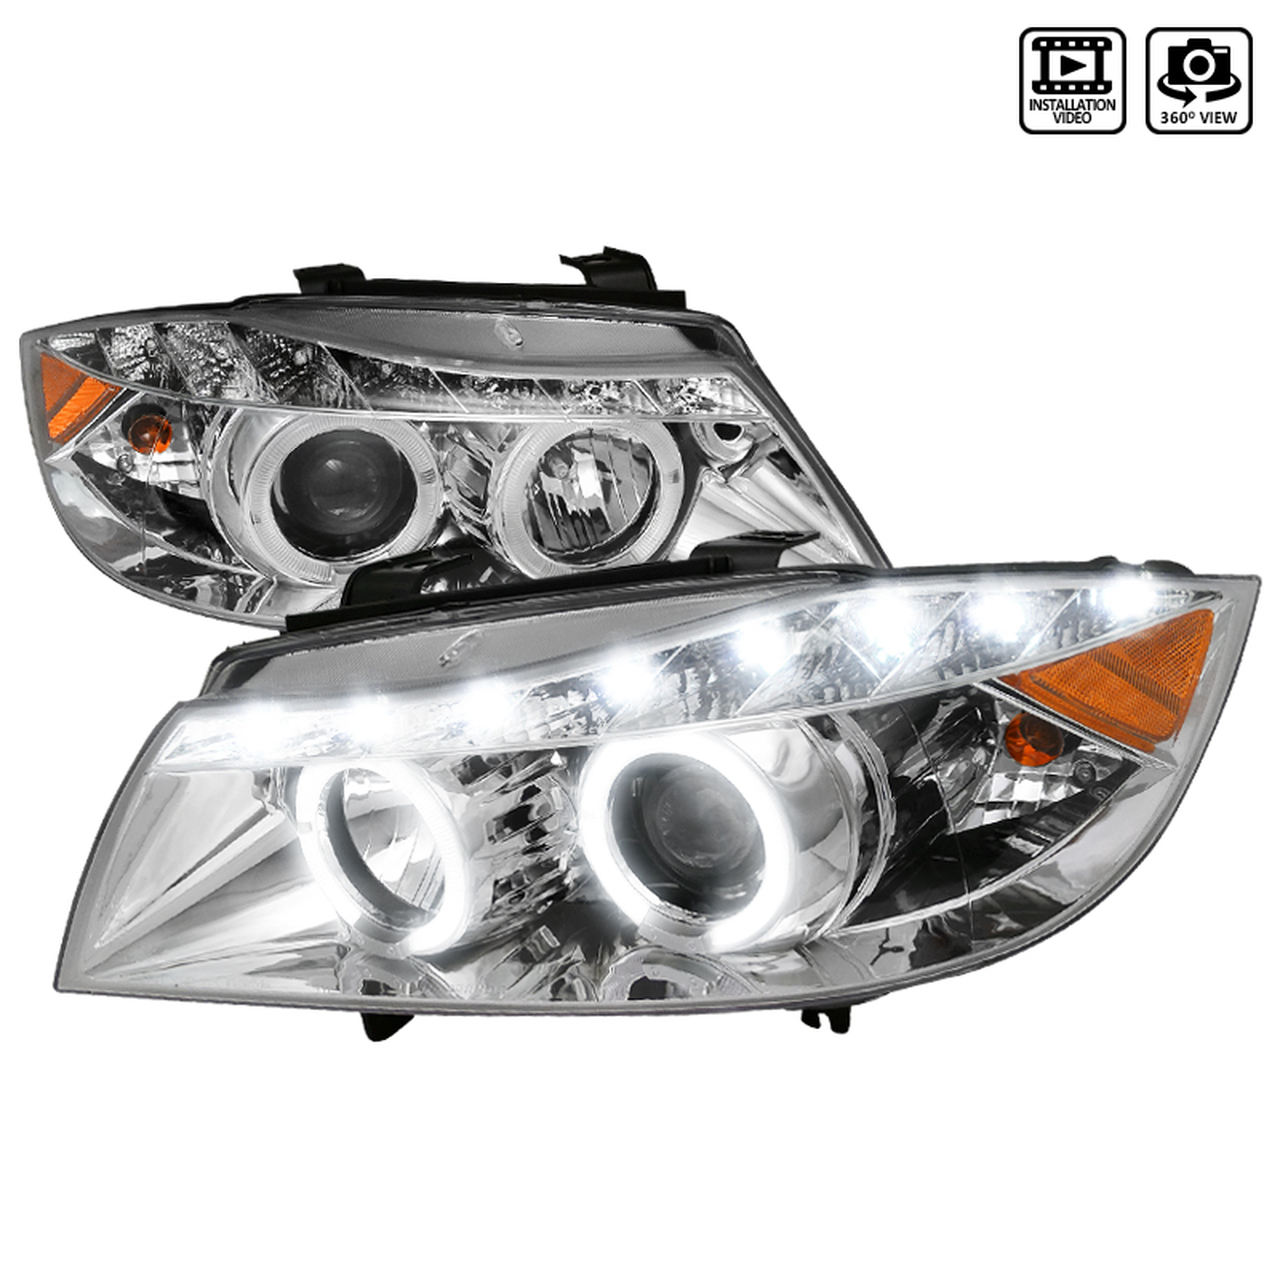 Spec-D Tuning Chrome R8 Style LED Projector Headlights - Spec-D Tuning 2LHP-E9005-8-TM